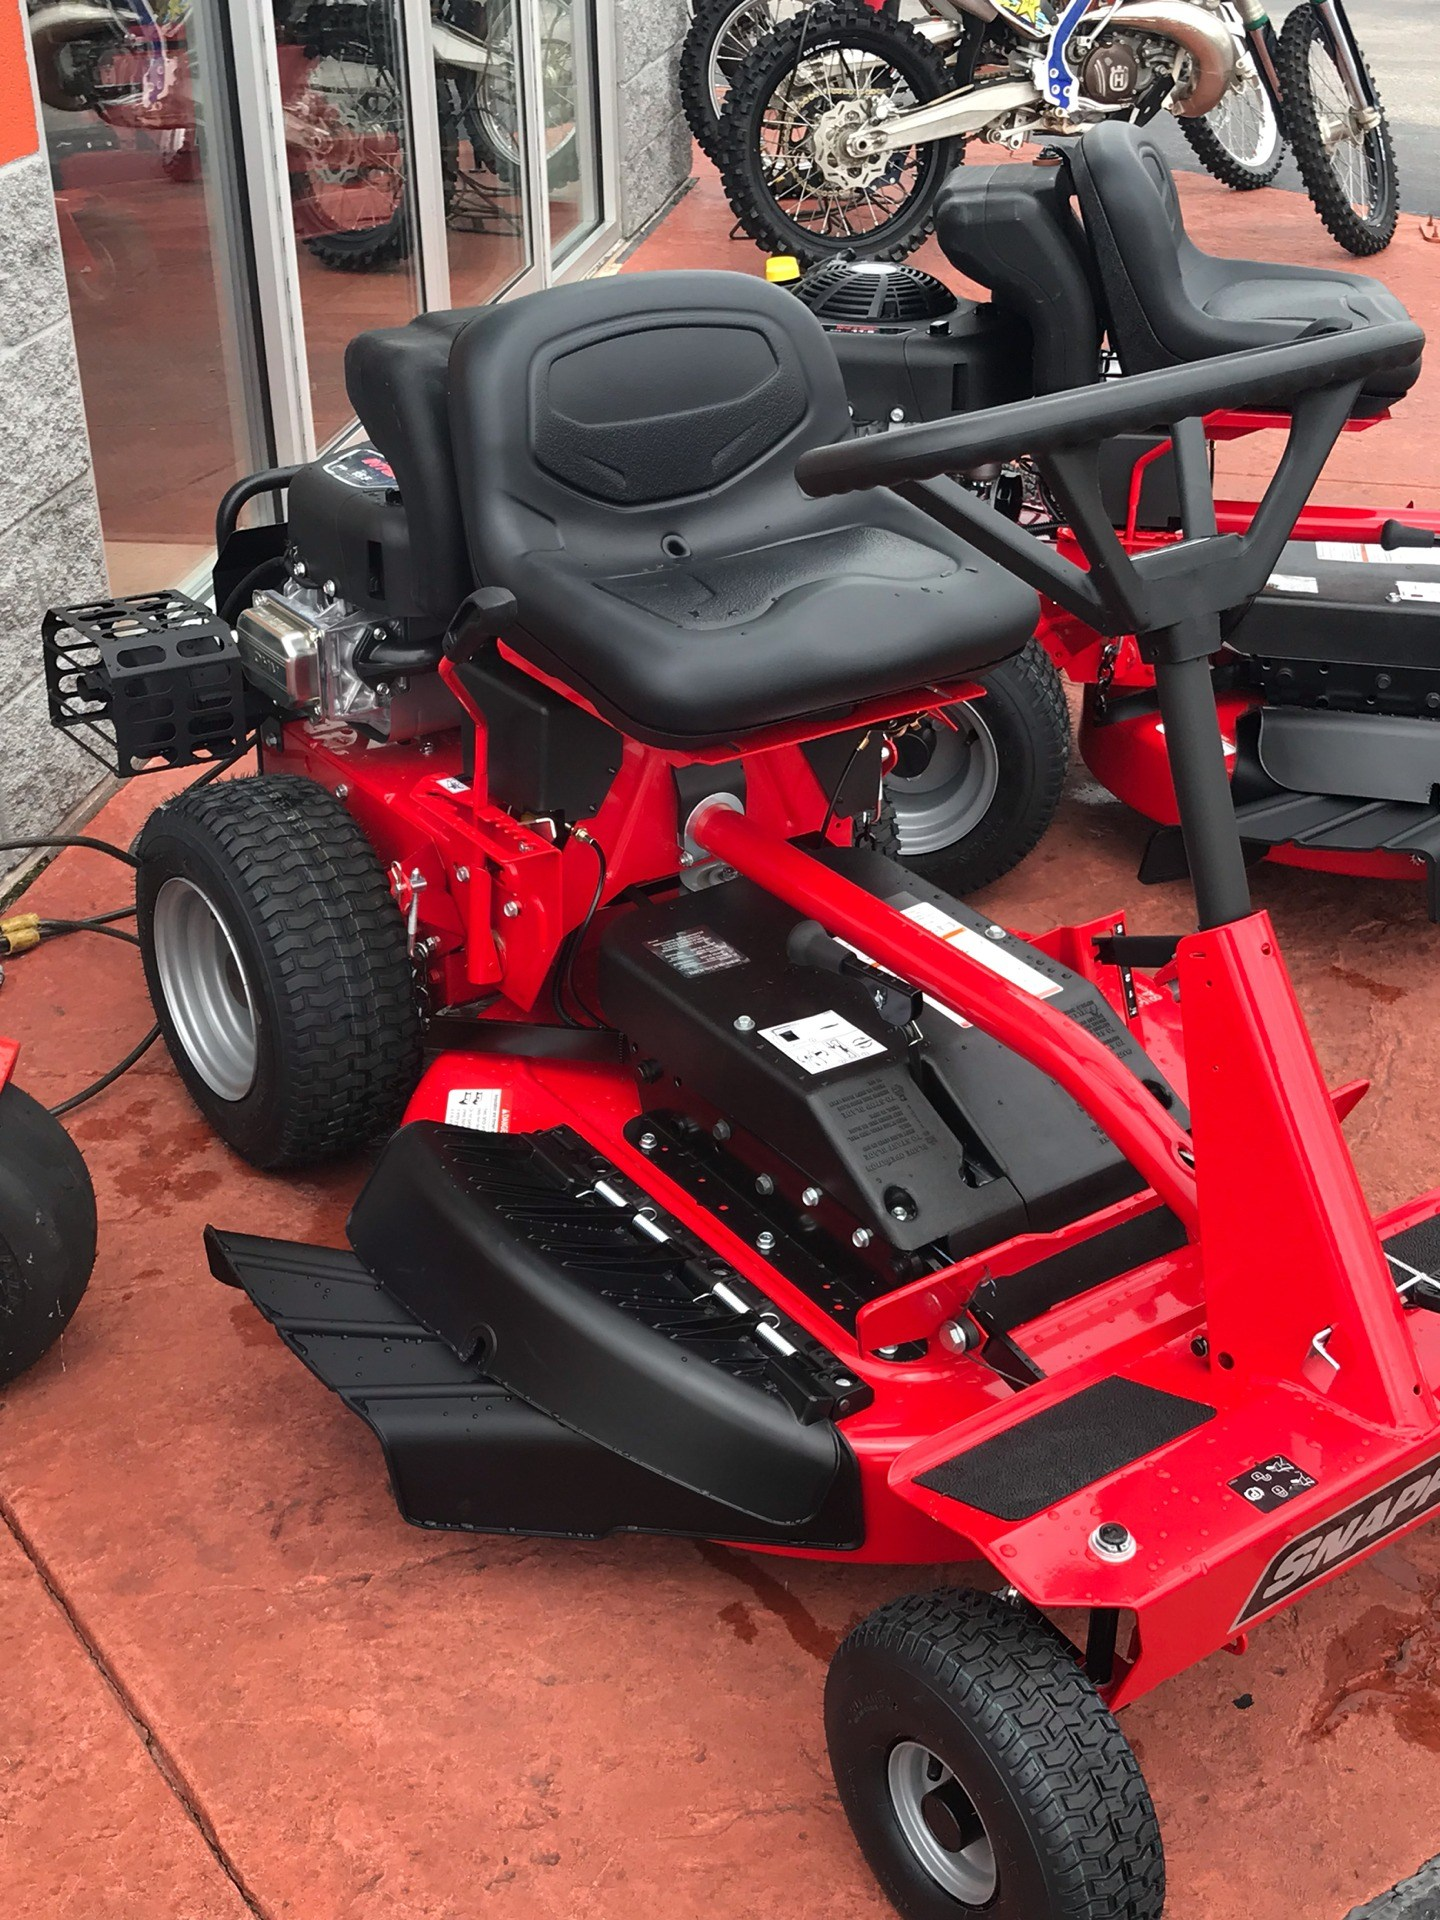 2019 Snapper Classic Rear Engine 33 in. Briggs & Stratton Intek 15.5 hp in Evansville, Indiana - Photo 3